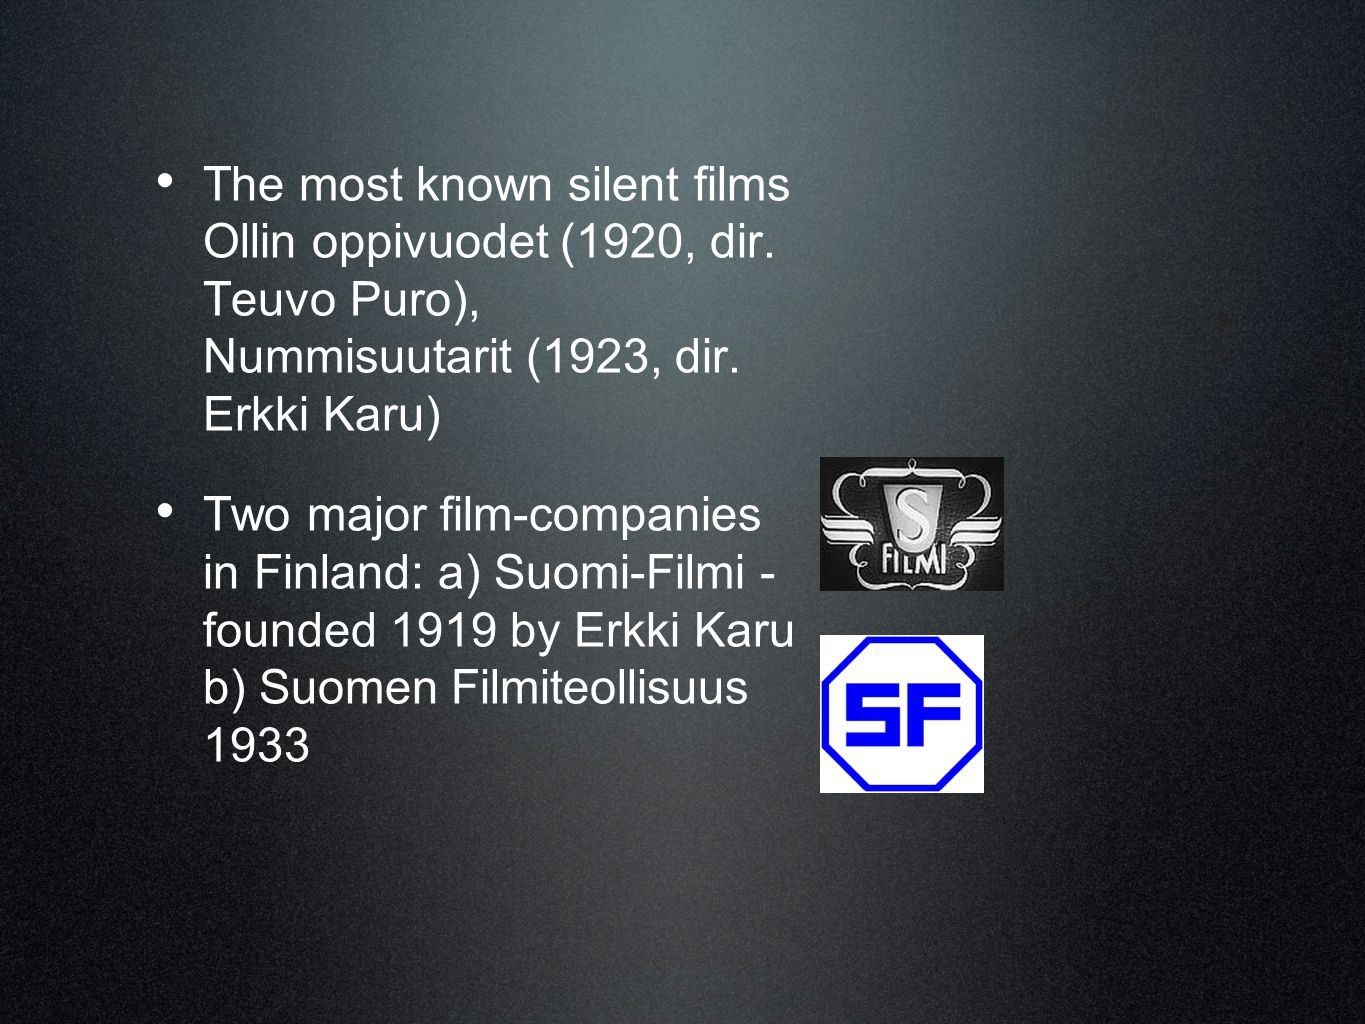 • The most known silent films Ollin oppivuodet (1920, dir. Teuvo Puro), Nummisuutarit (1923, dir. Erkki Karu) • Two major film-companies in Finland: a